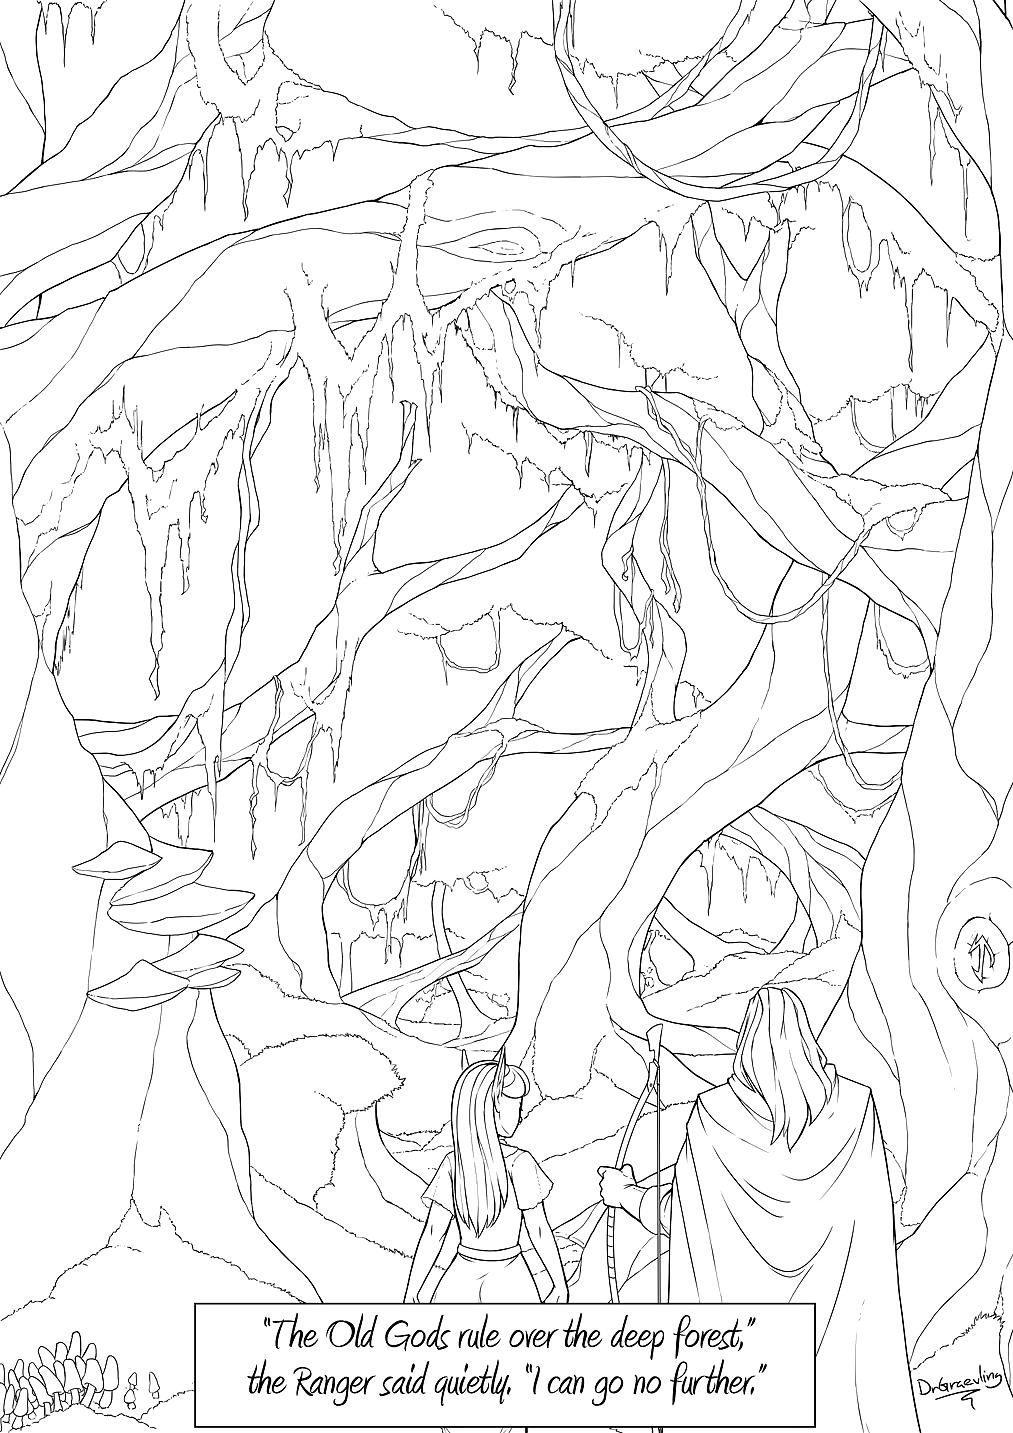 Colouring Book - part 4